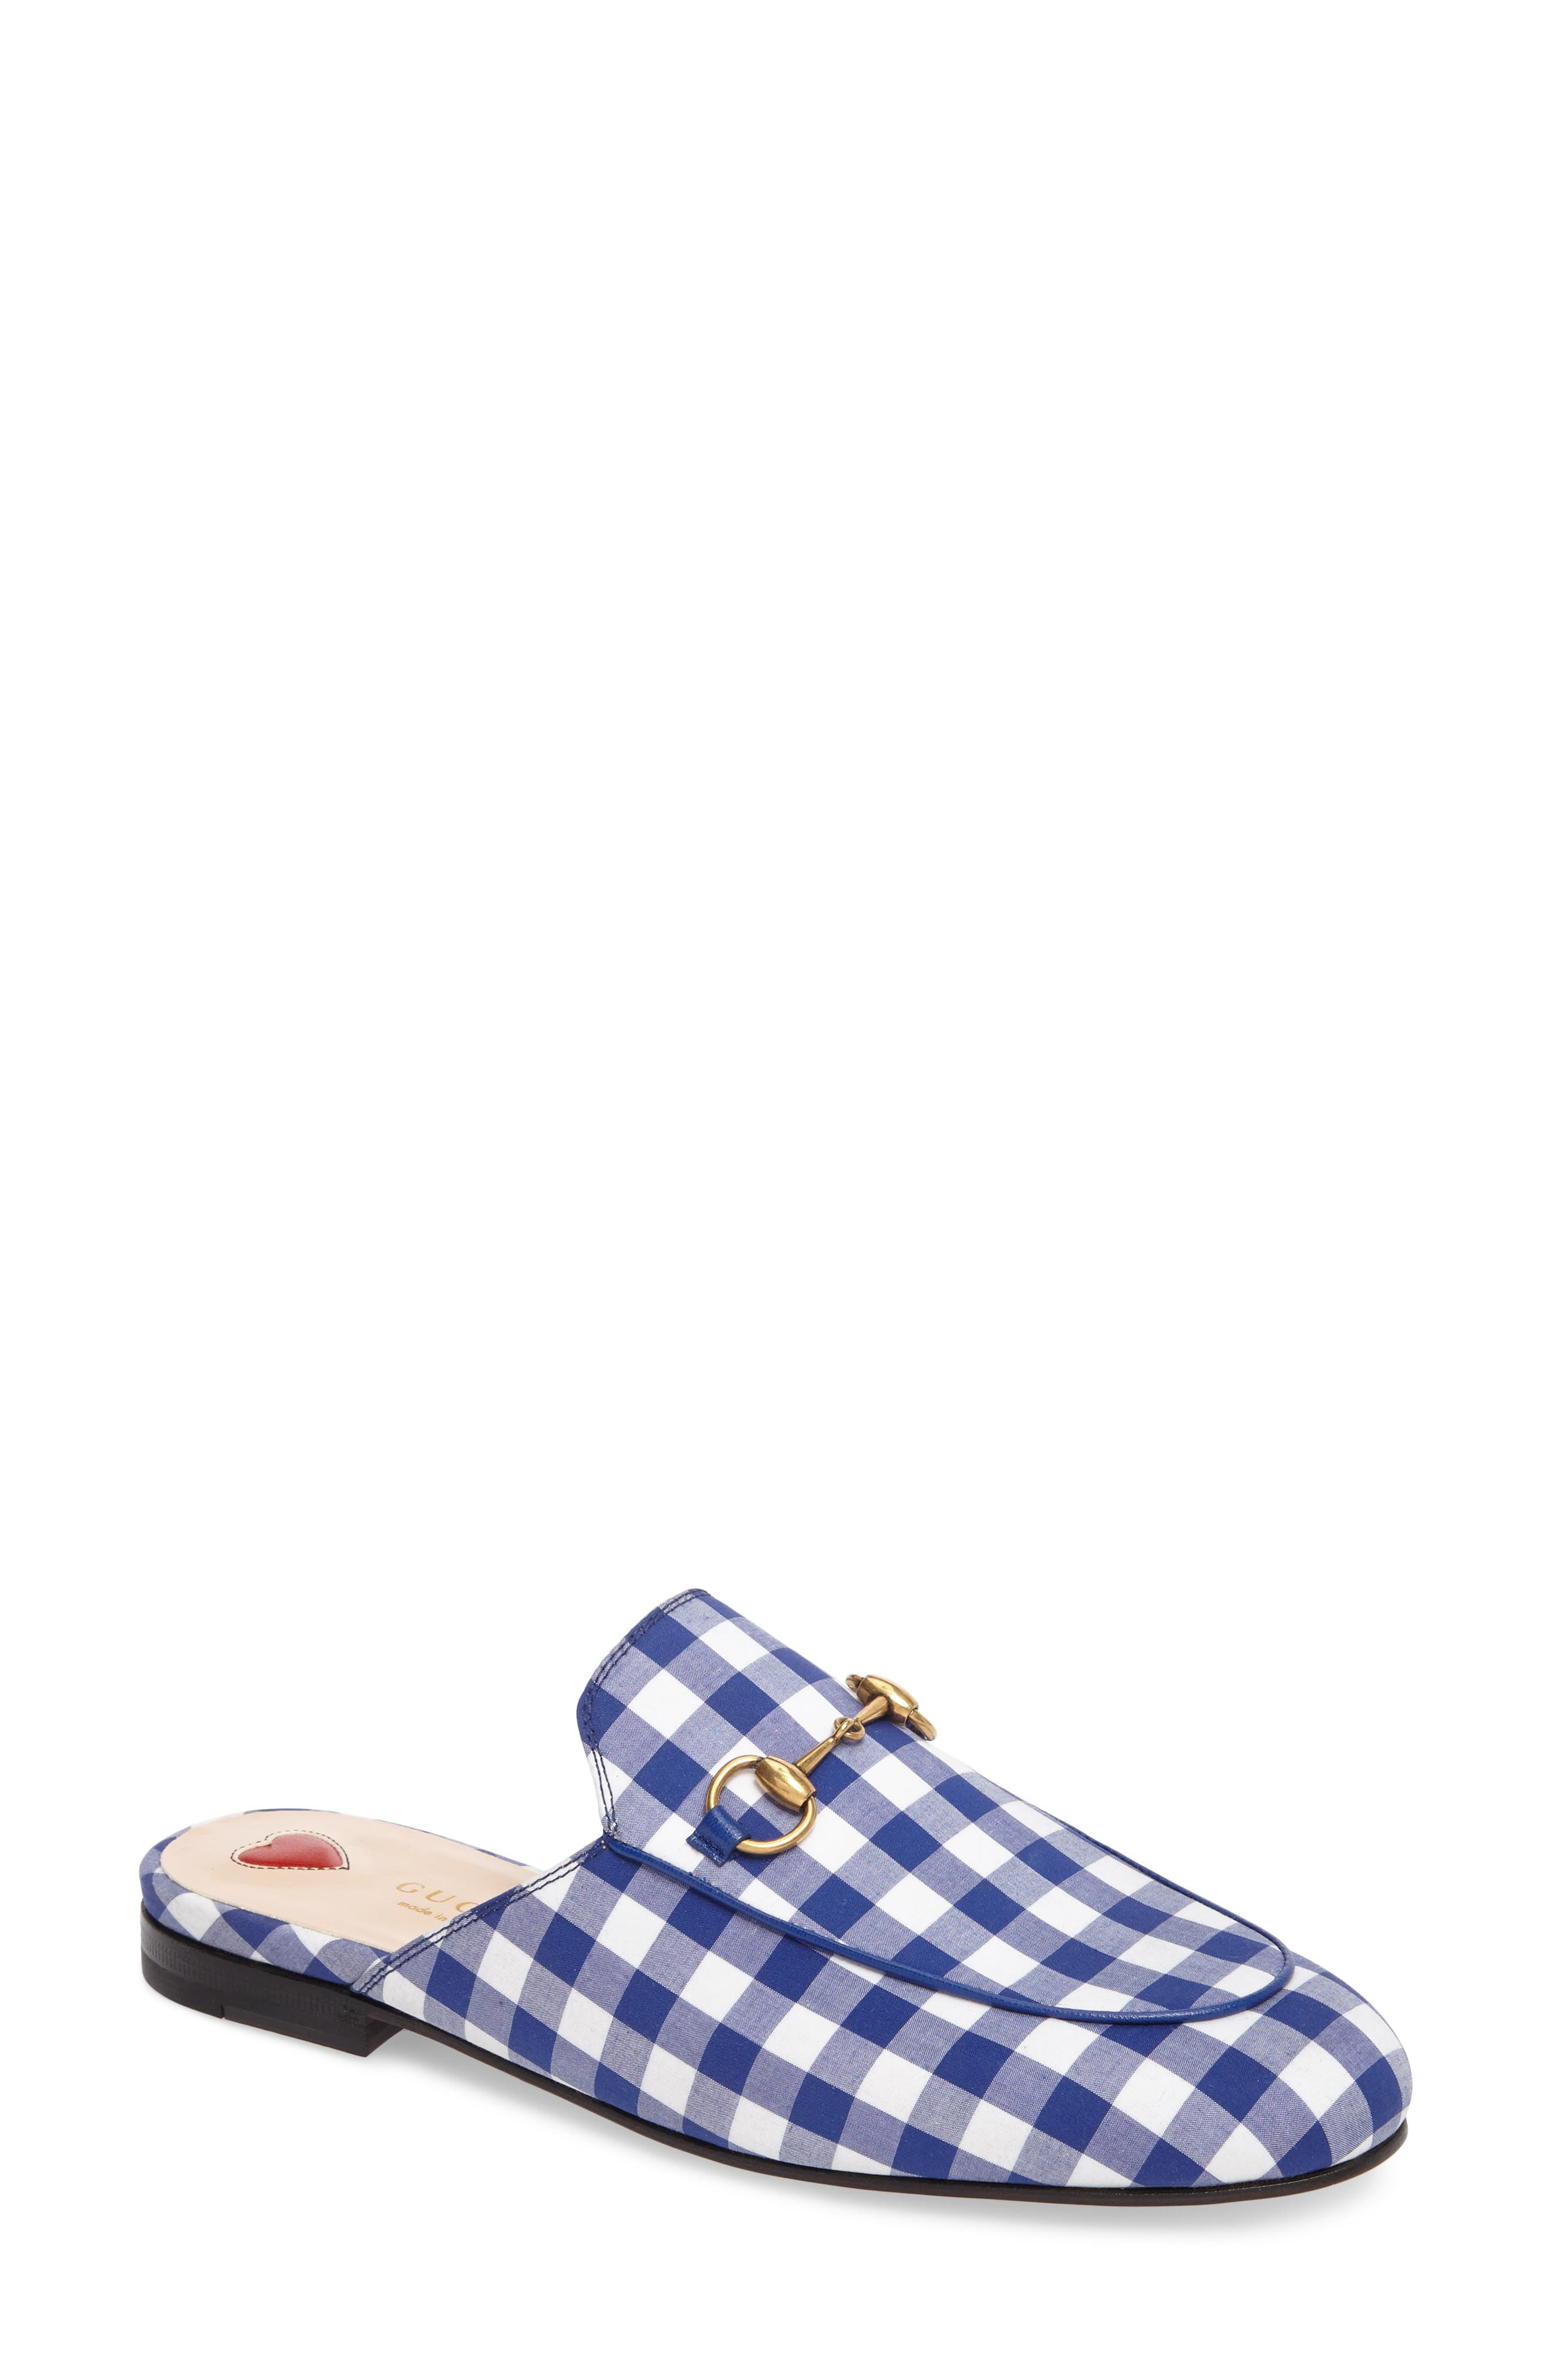 Gucci Princetown Gingham Loafer Mule (Women)